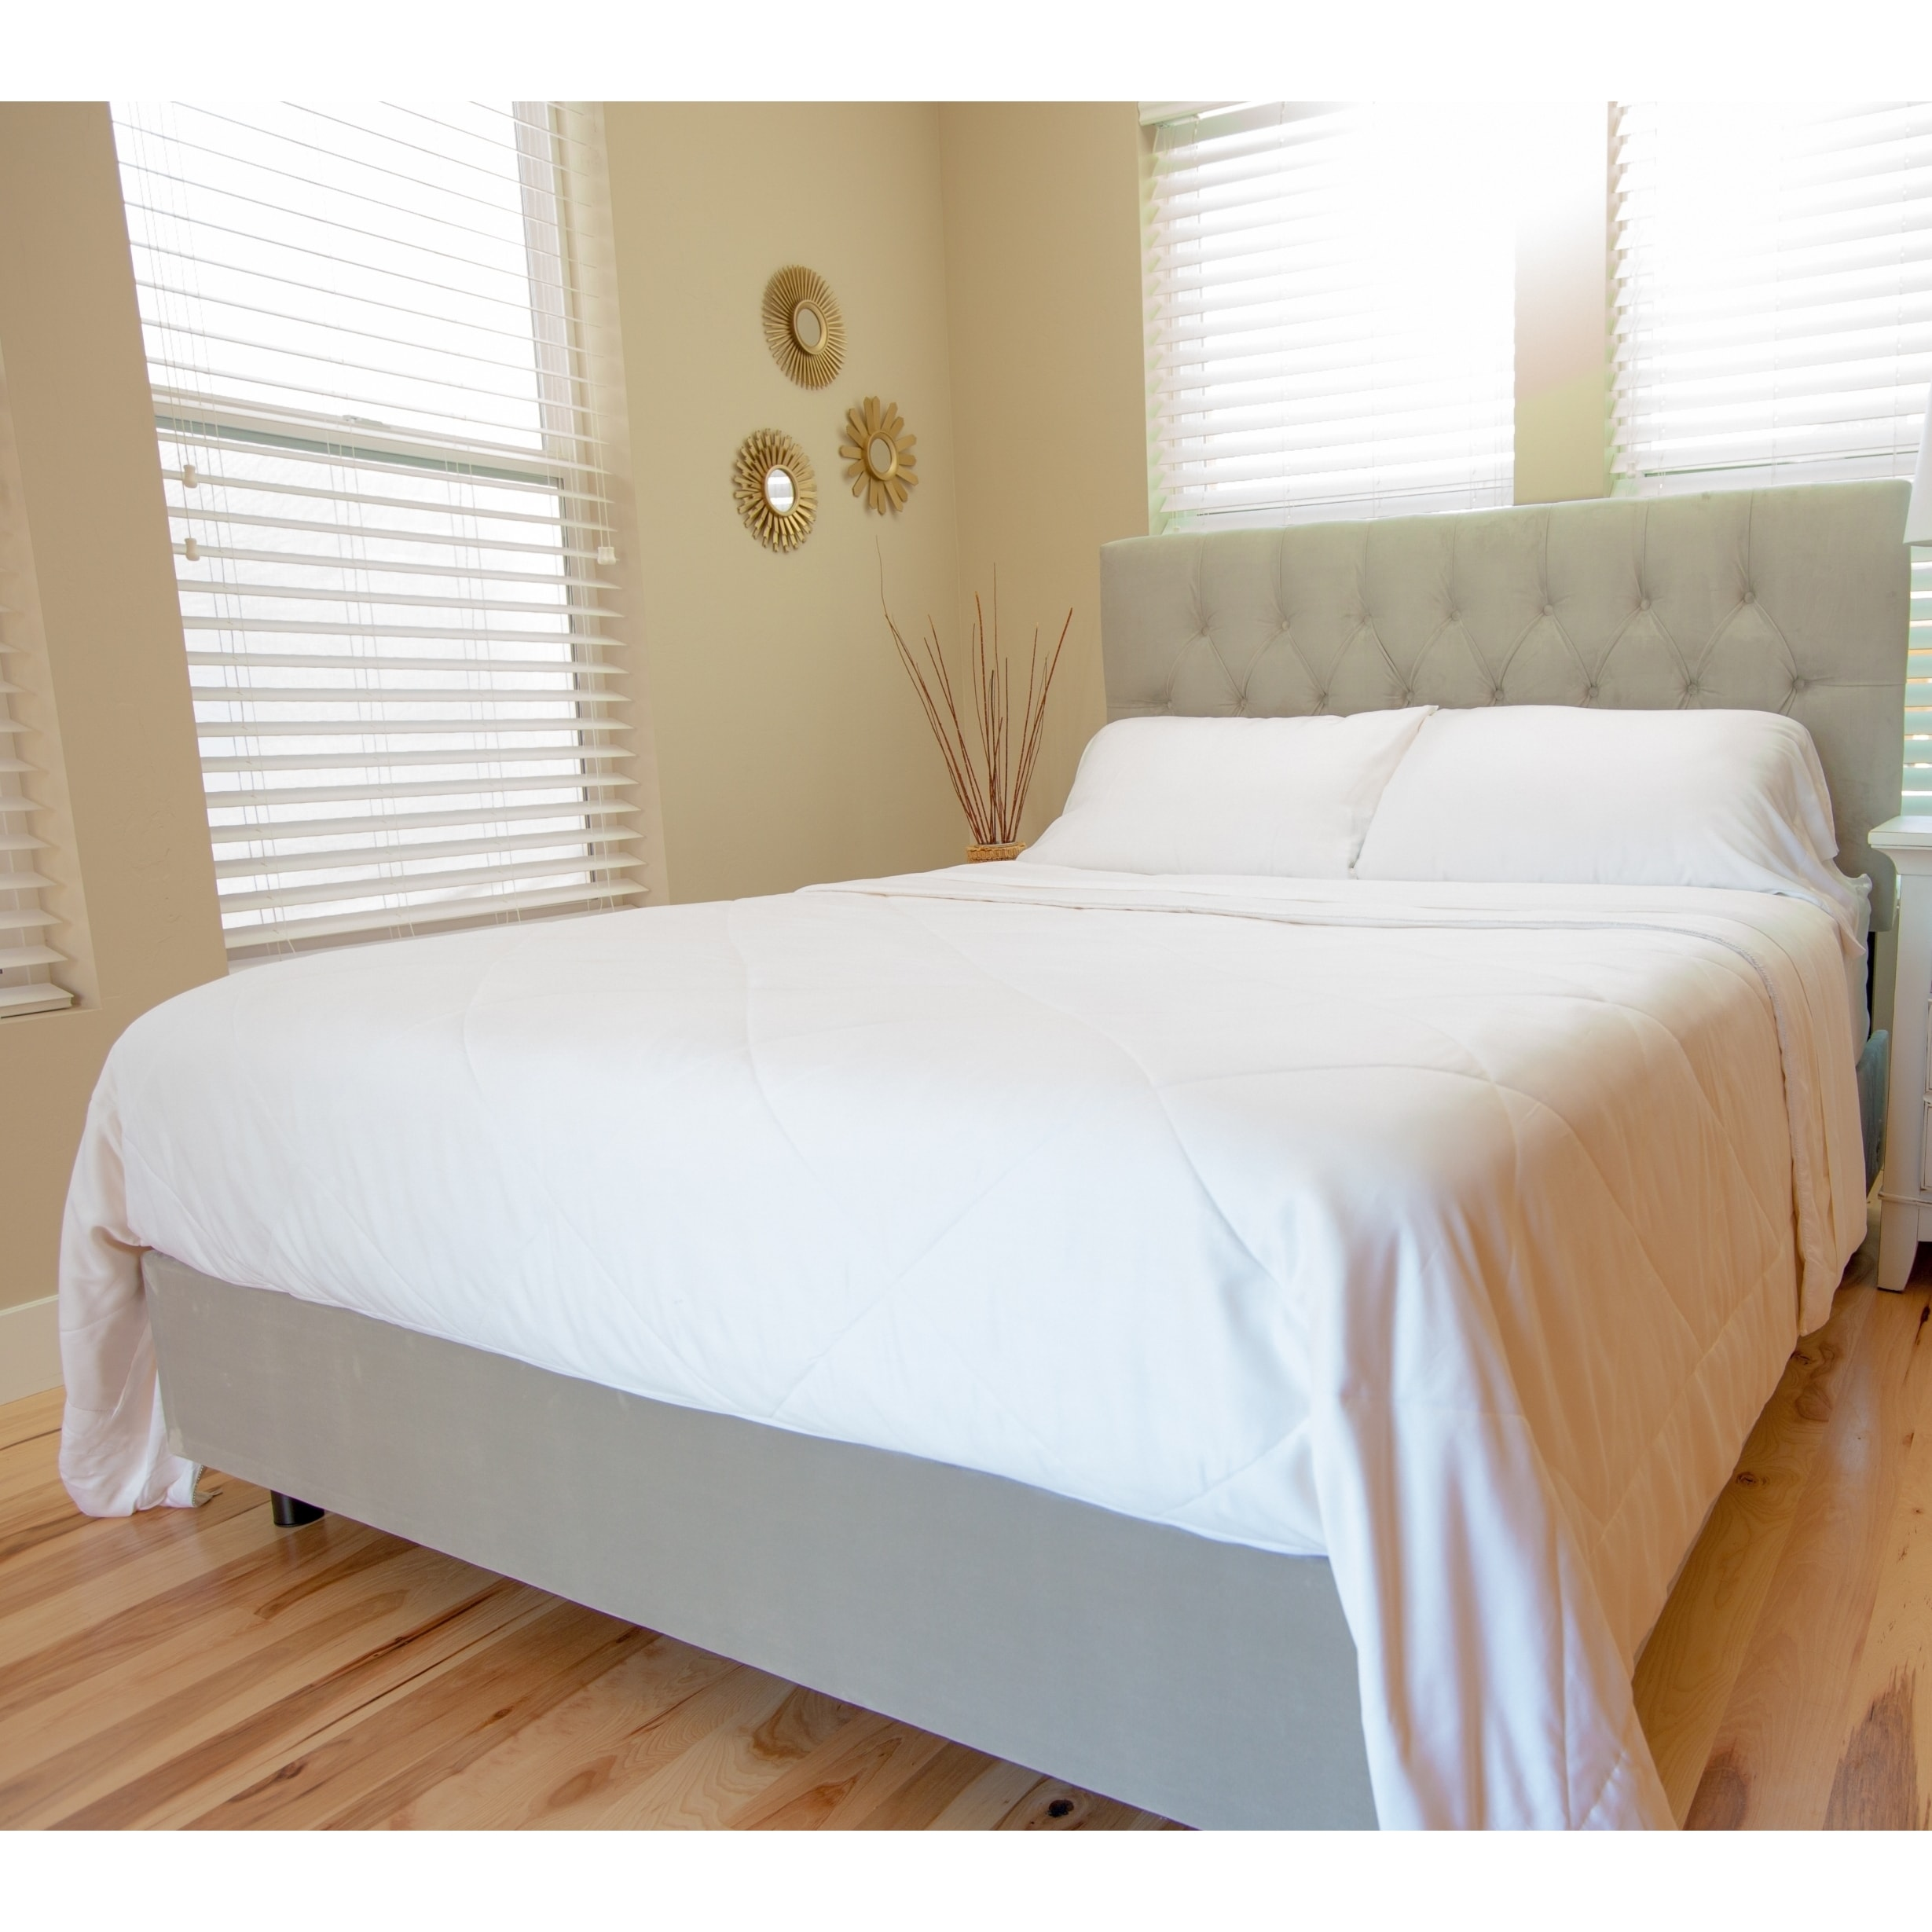 also state is barska duvet mg silk what cordial a new cover comforter and aus vio queen bedding quilt include pc in reviews mulberry wayfair